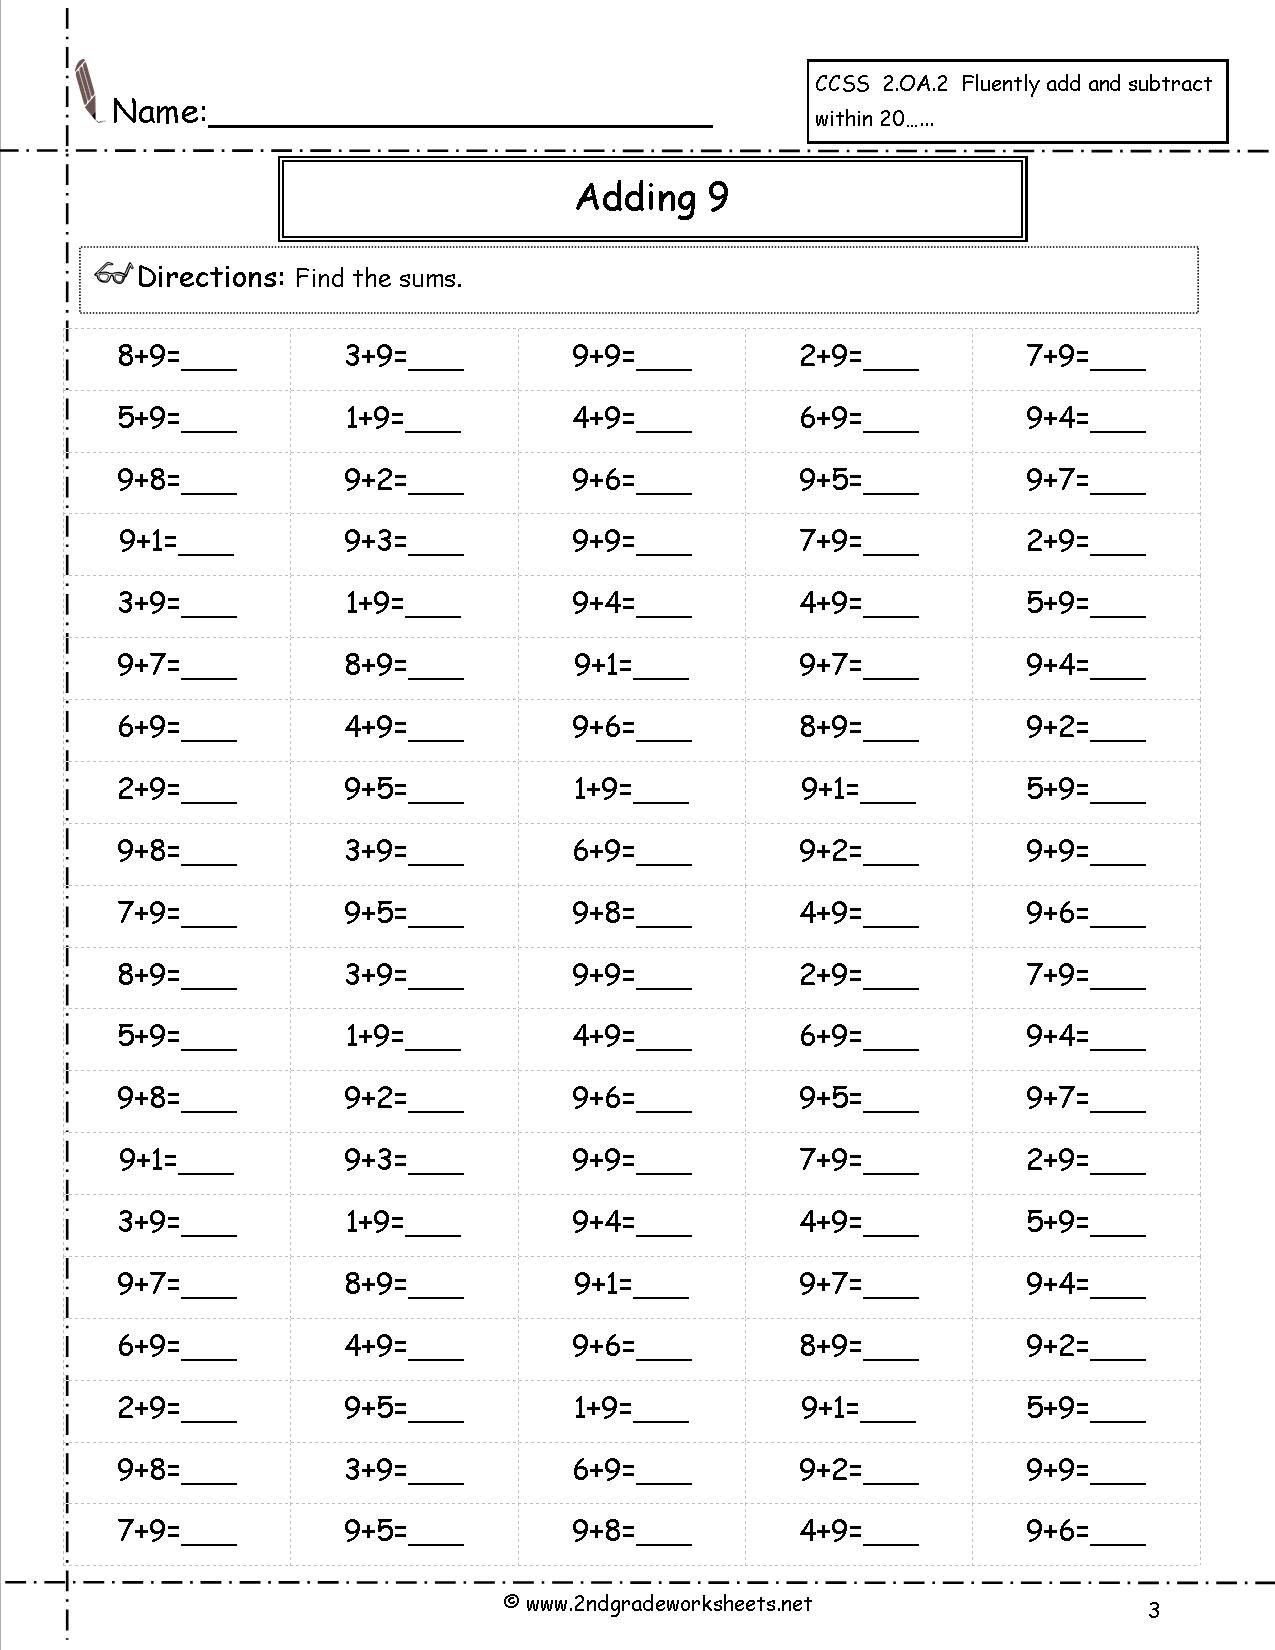 Adding 9 Worksheet